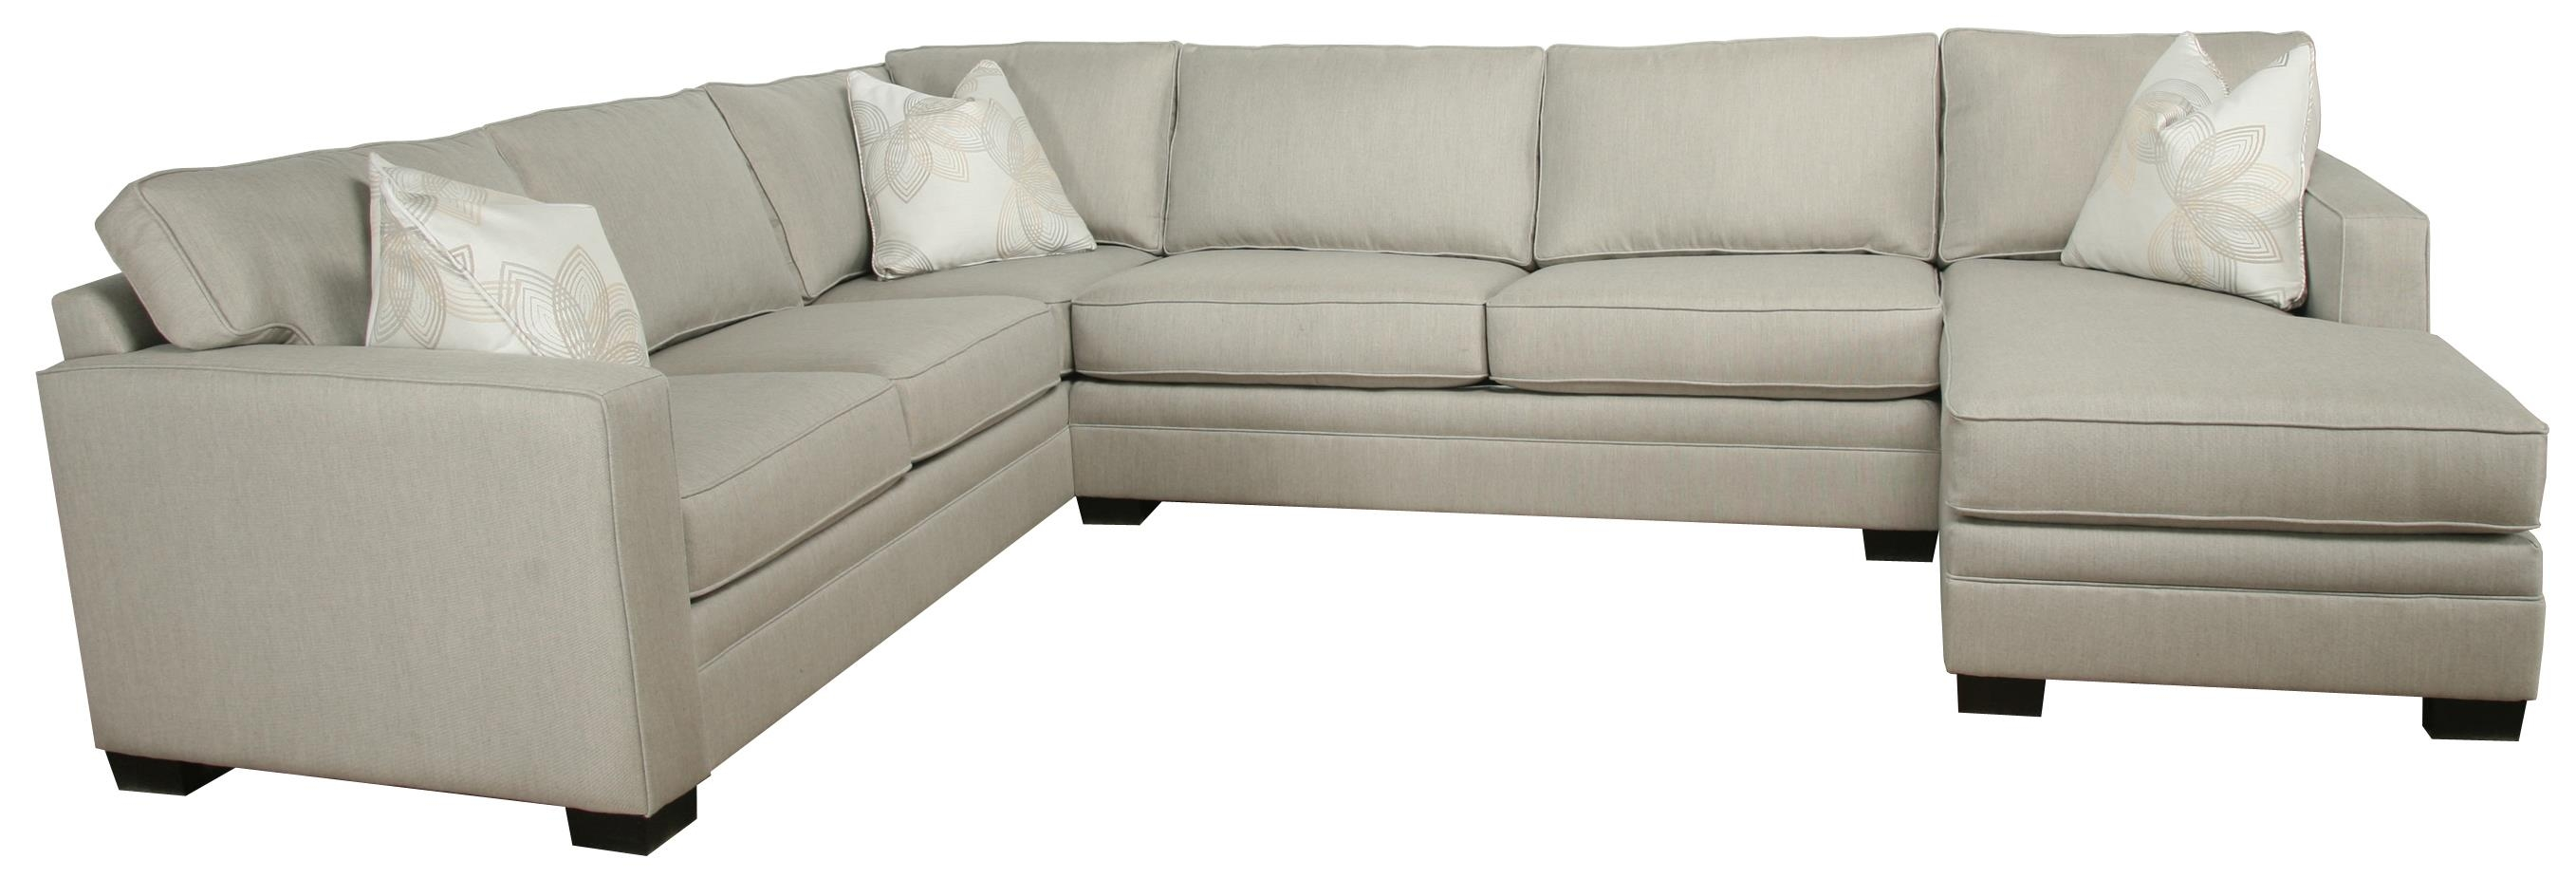 Contemporary 3 Piece Sectional With Chaise Bauhaus Wolf And Intended For Bauhaus Sectional Sofas (#9 of 12)